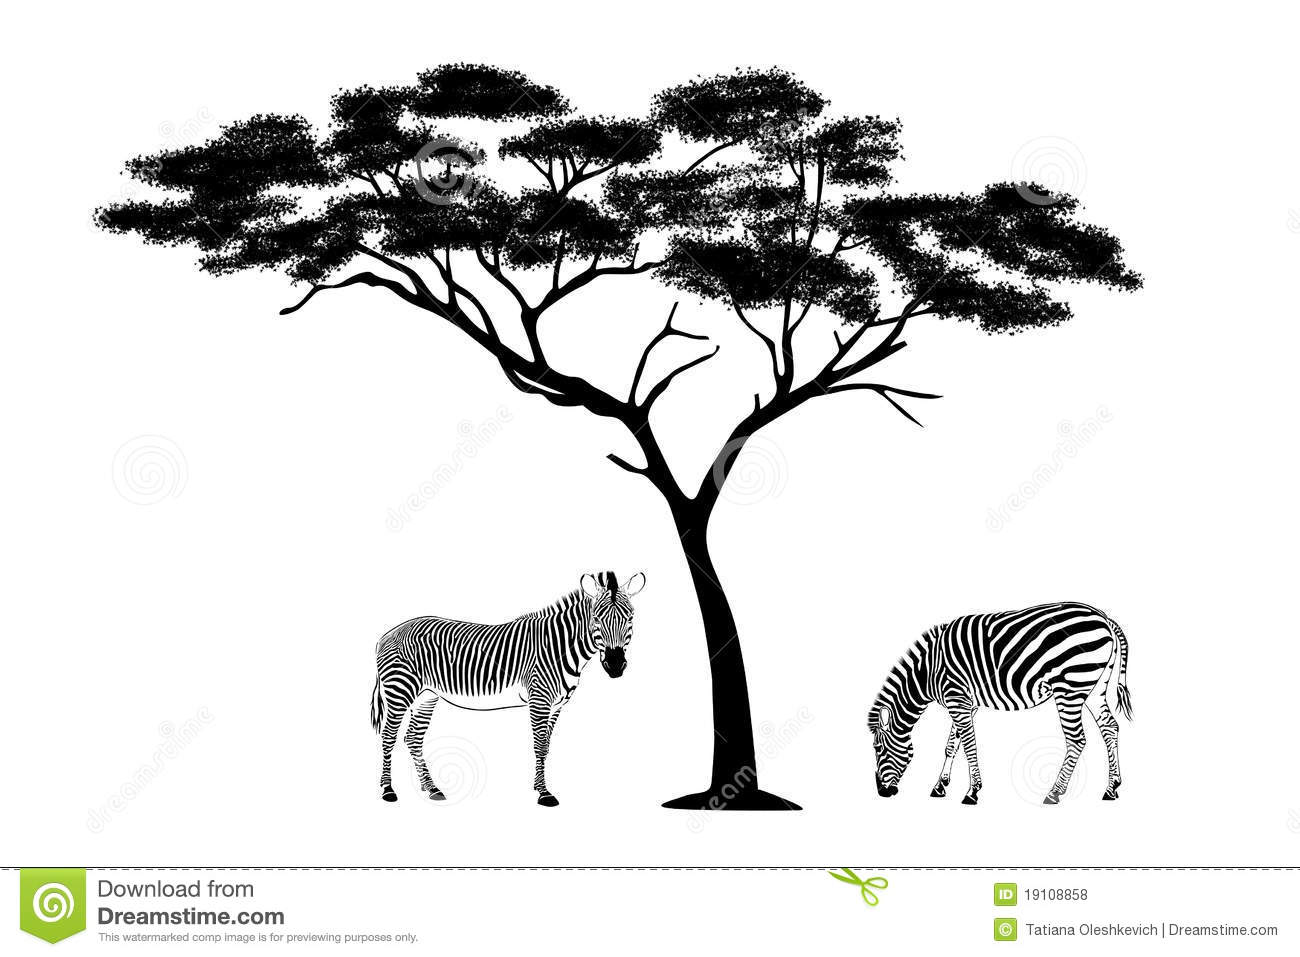 Zebras Under The Tree Illustration Stock Illustration - Illustration